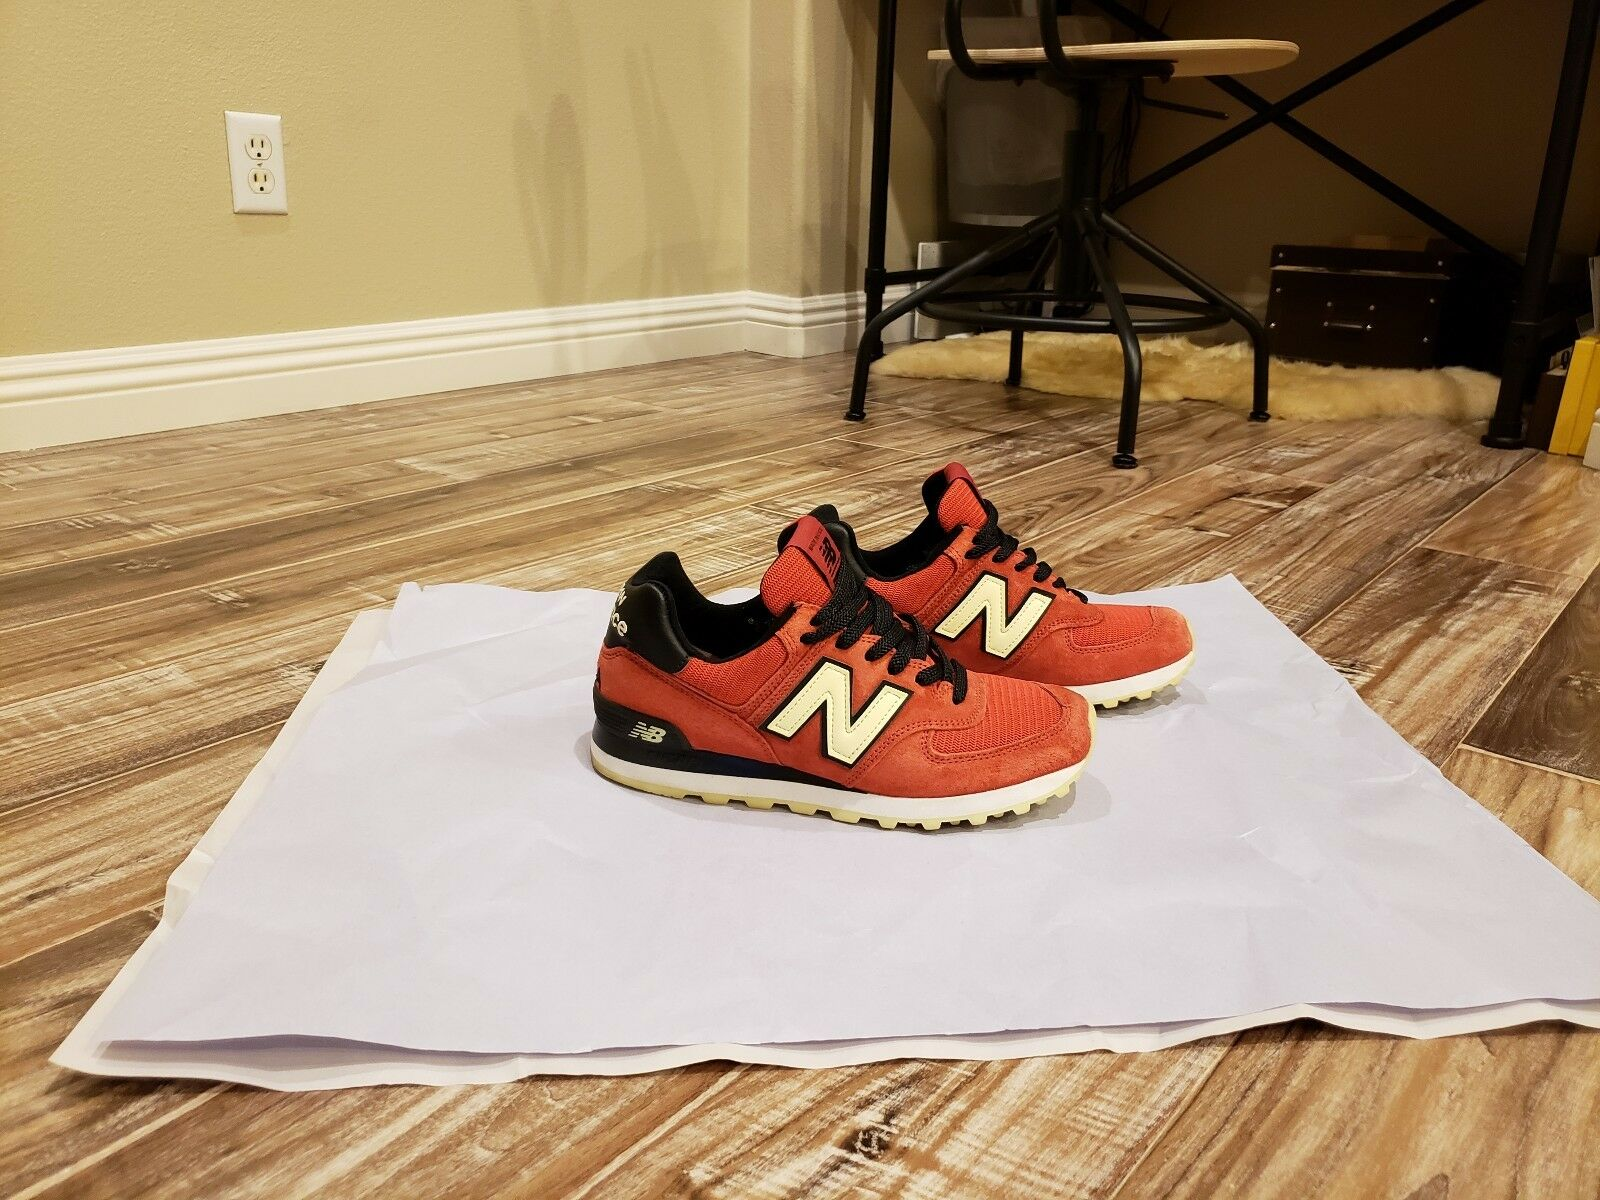 Authentic New Balance 574 Limited Edition NYC in Excellent Condition,Sz7US